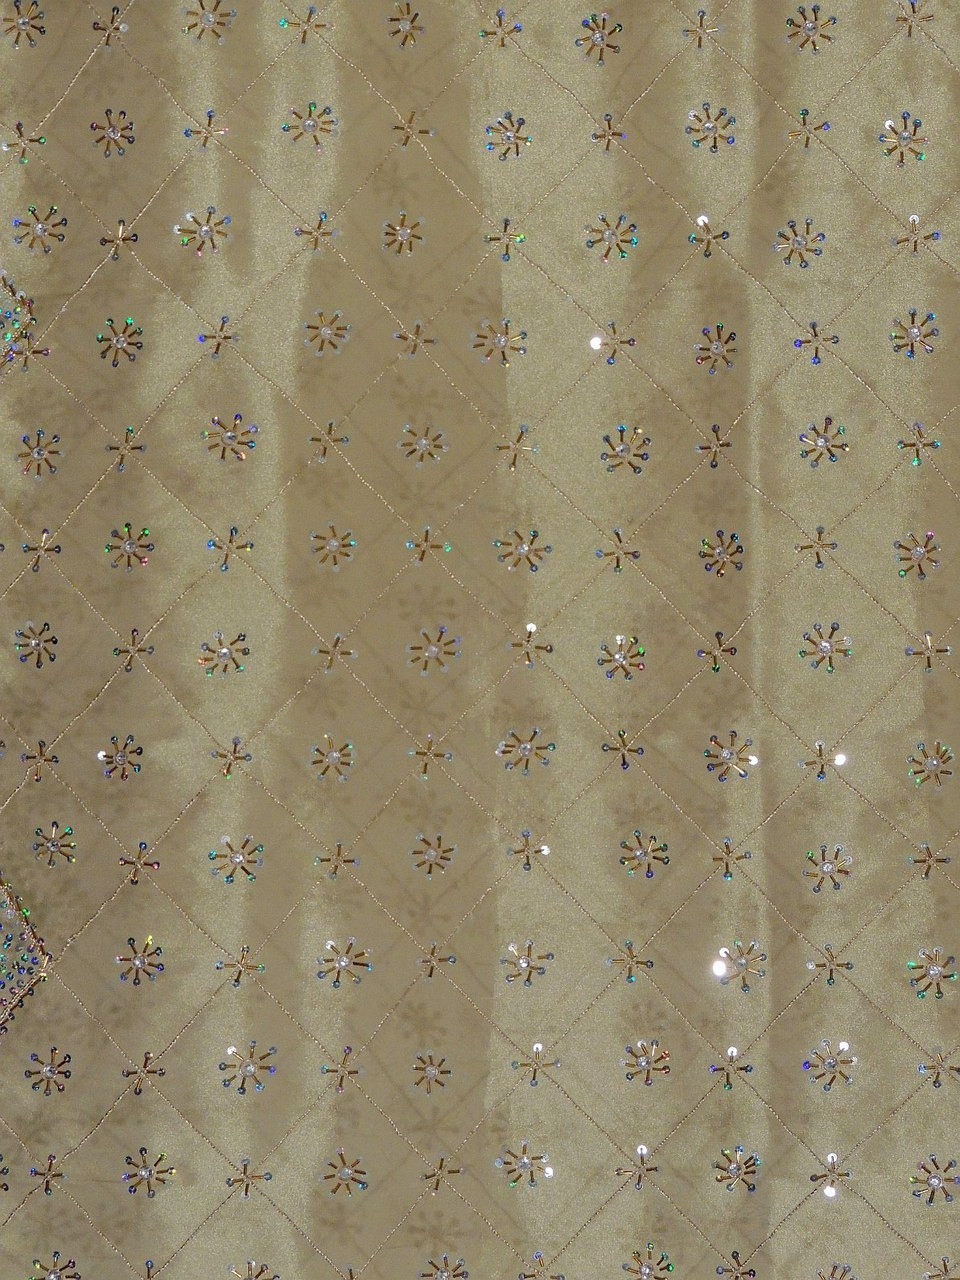 Beige Gold Sheer Curtain Panel - Hand Embroidered Beaded Window Treatments  92